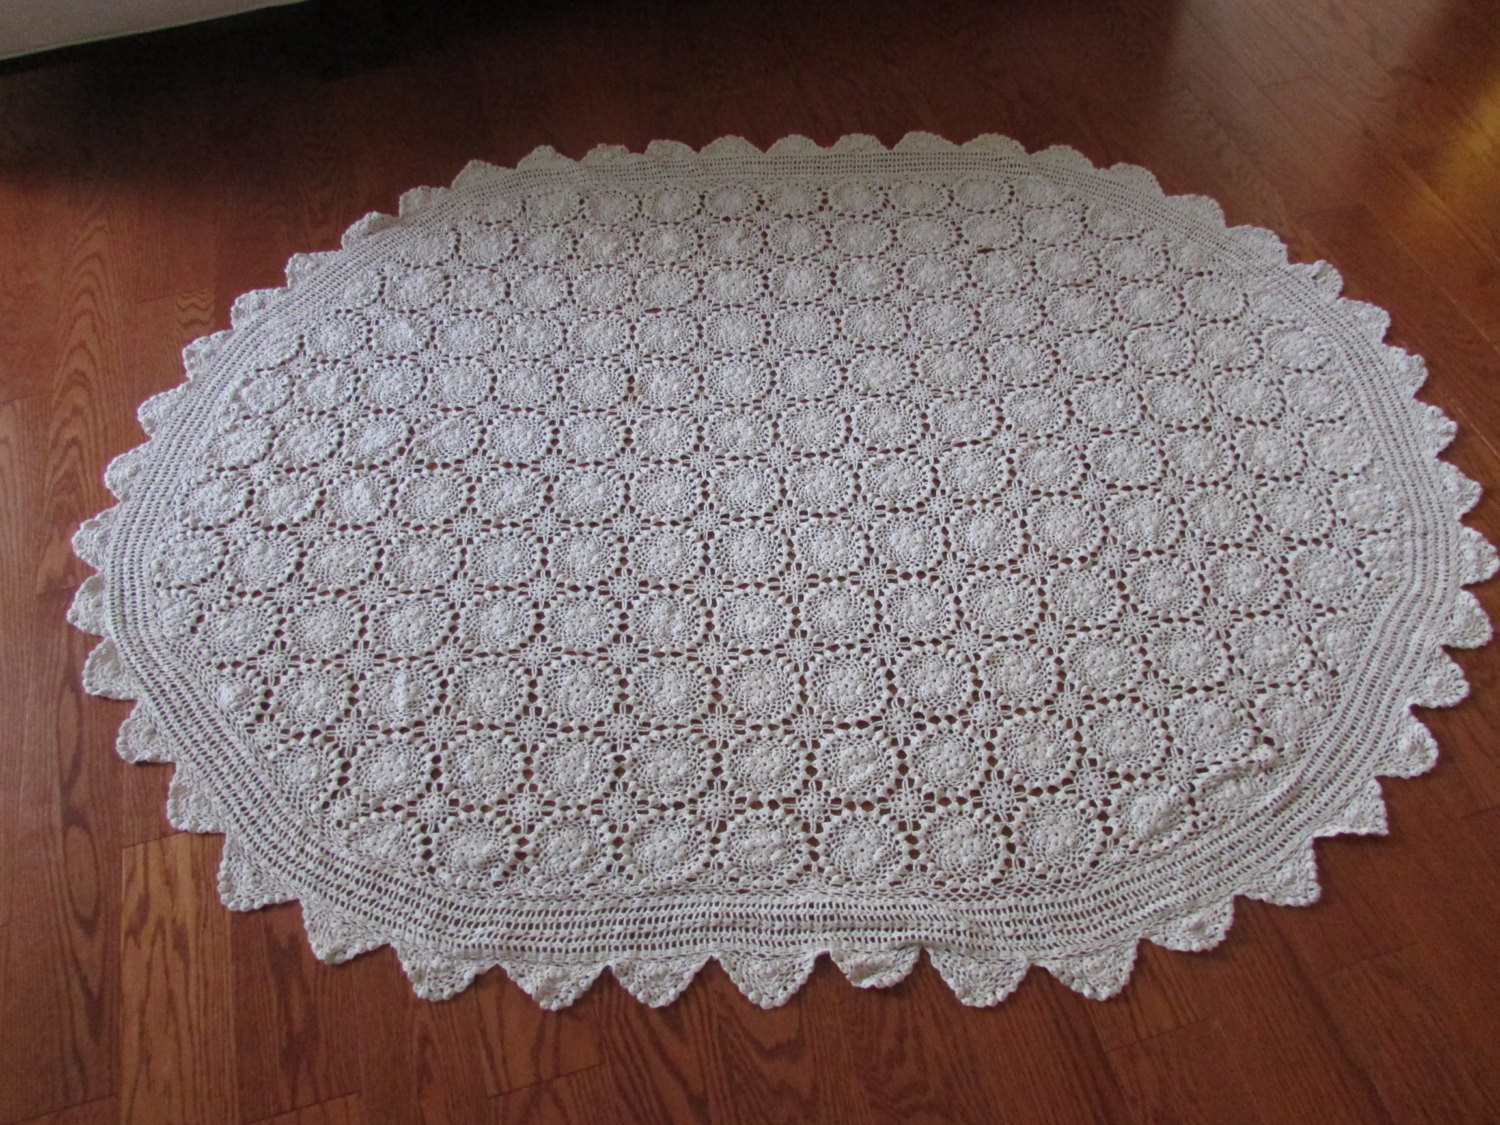 Beautiful Vintage Oval Crocheted Lace Tablecloth Vintage Crochet Crochet Lace Tablecloths Of Luxury 47 Images Crochet Lace Tablecloths